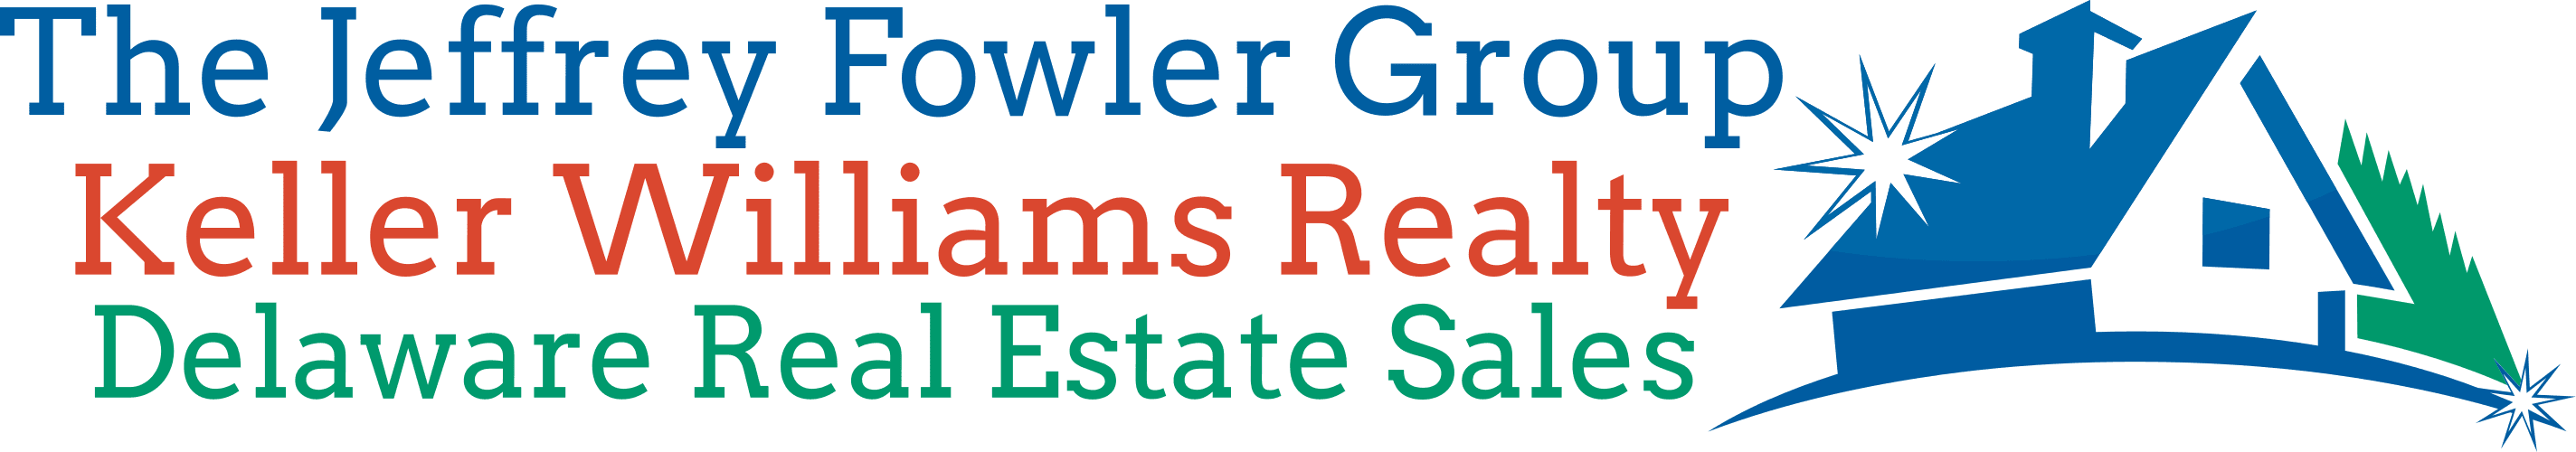 Jeffrey Fowler Group Delaware Real Estate Sales